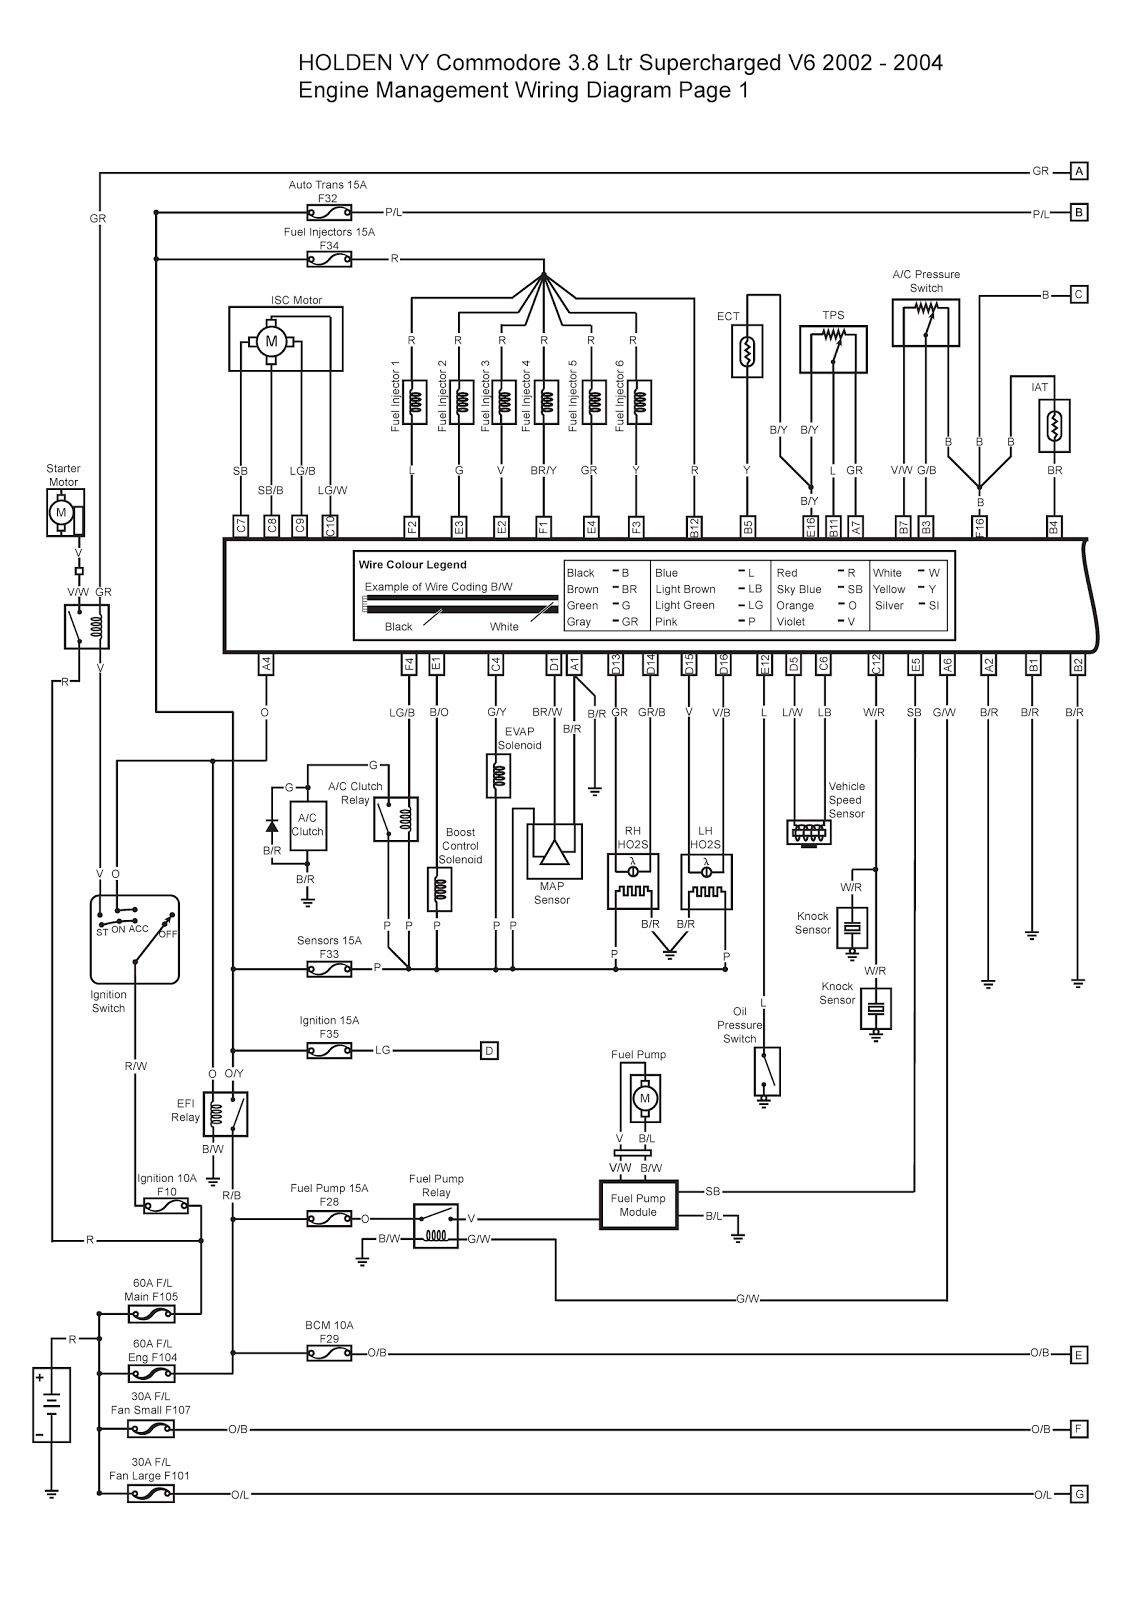 0001 vz wiring diagram efcaviation com vz commodore stereo wiring diagram at reclaimingppi.co